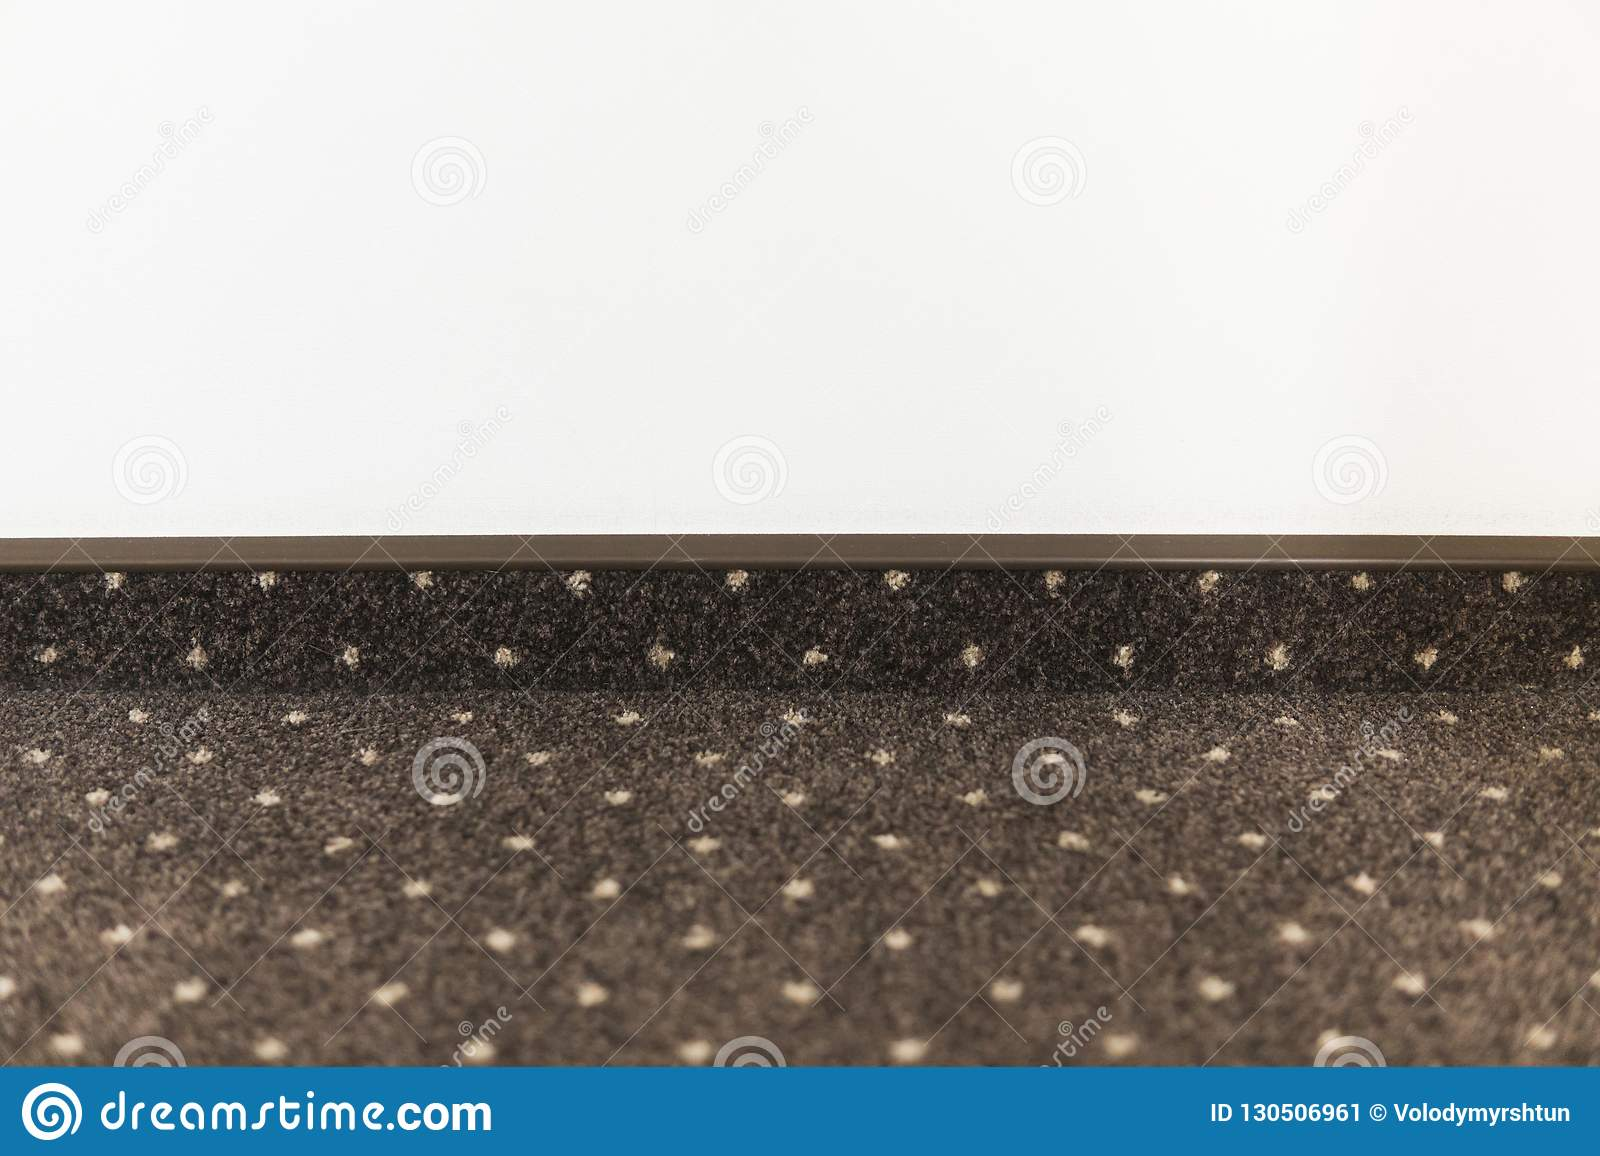 Brown carpet floor with a white dots with a carpet baseboard on a white wall.